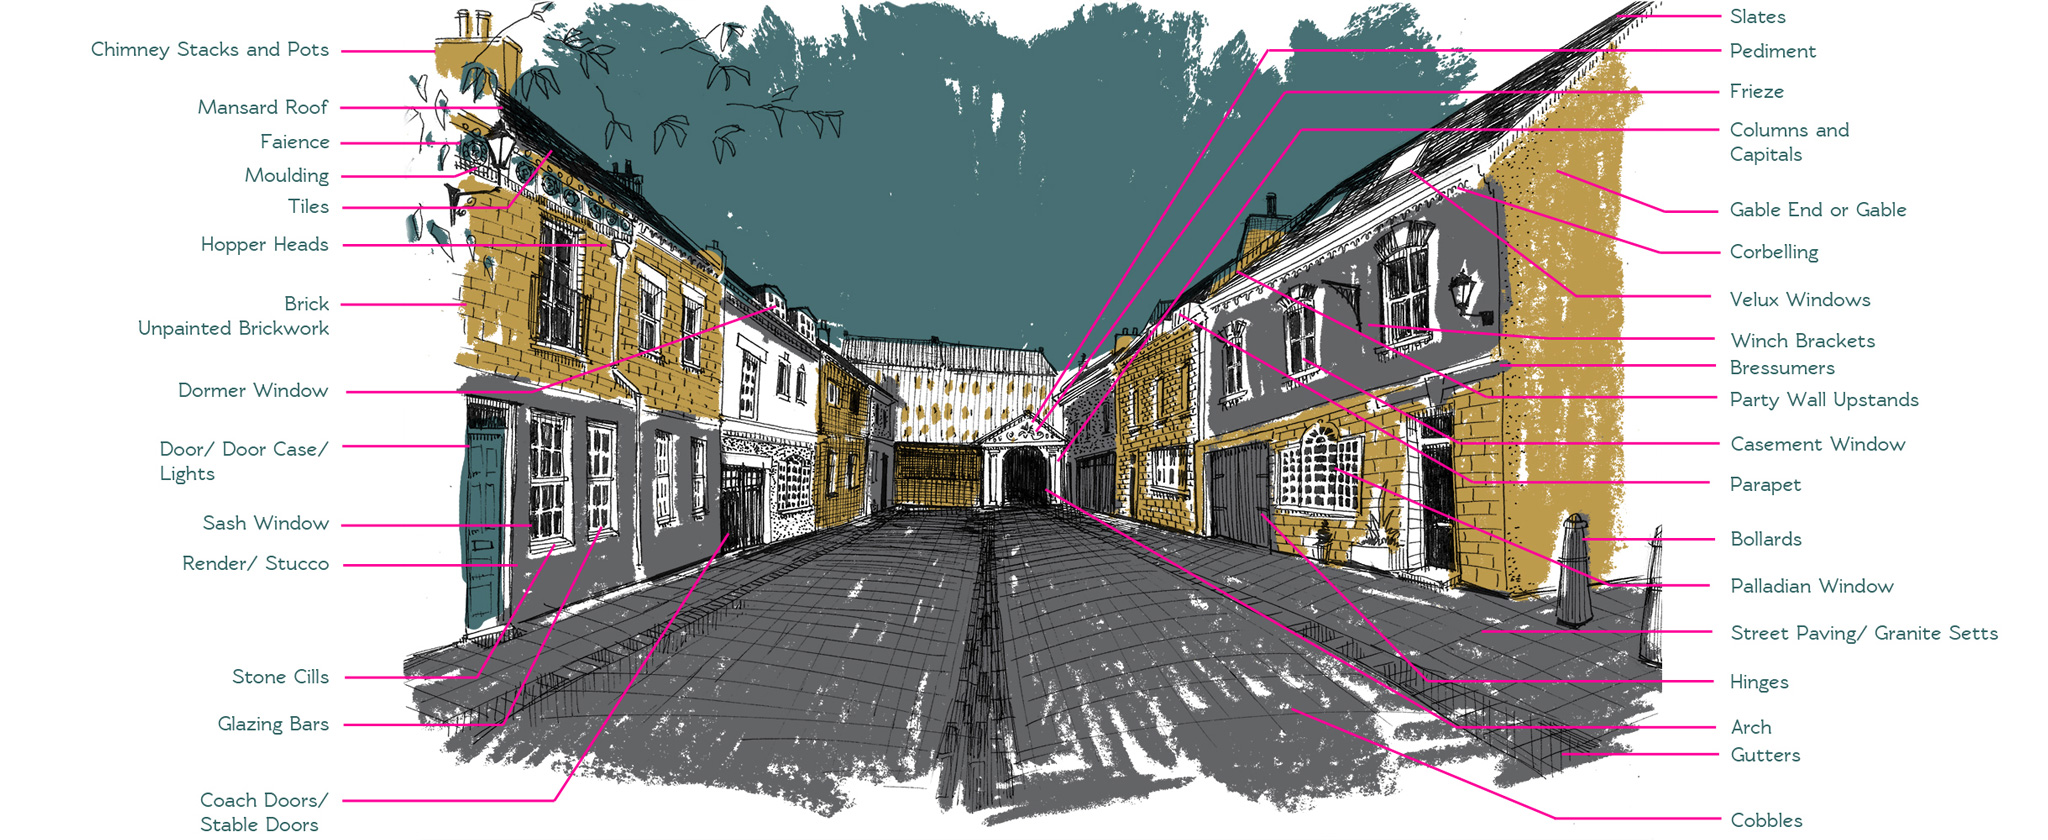 familiar features of the Mews